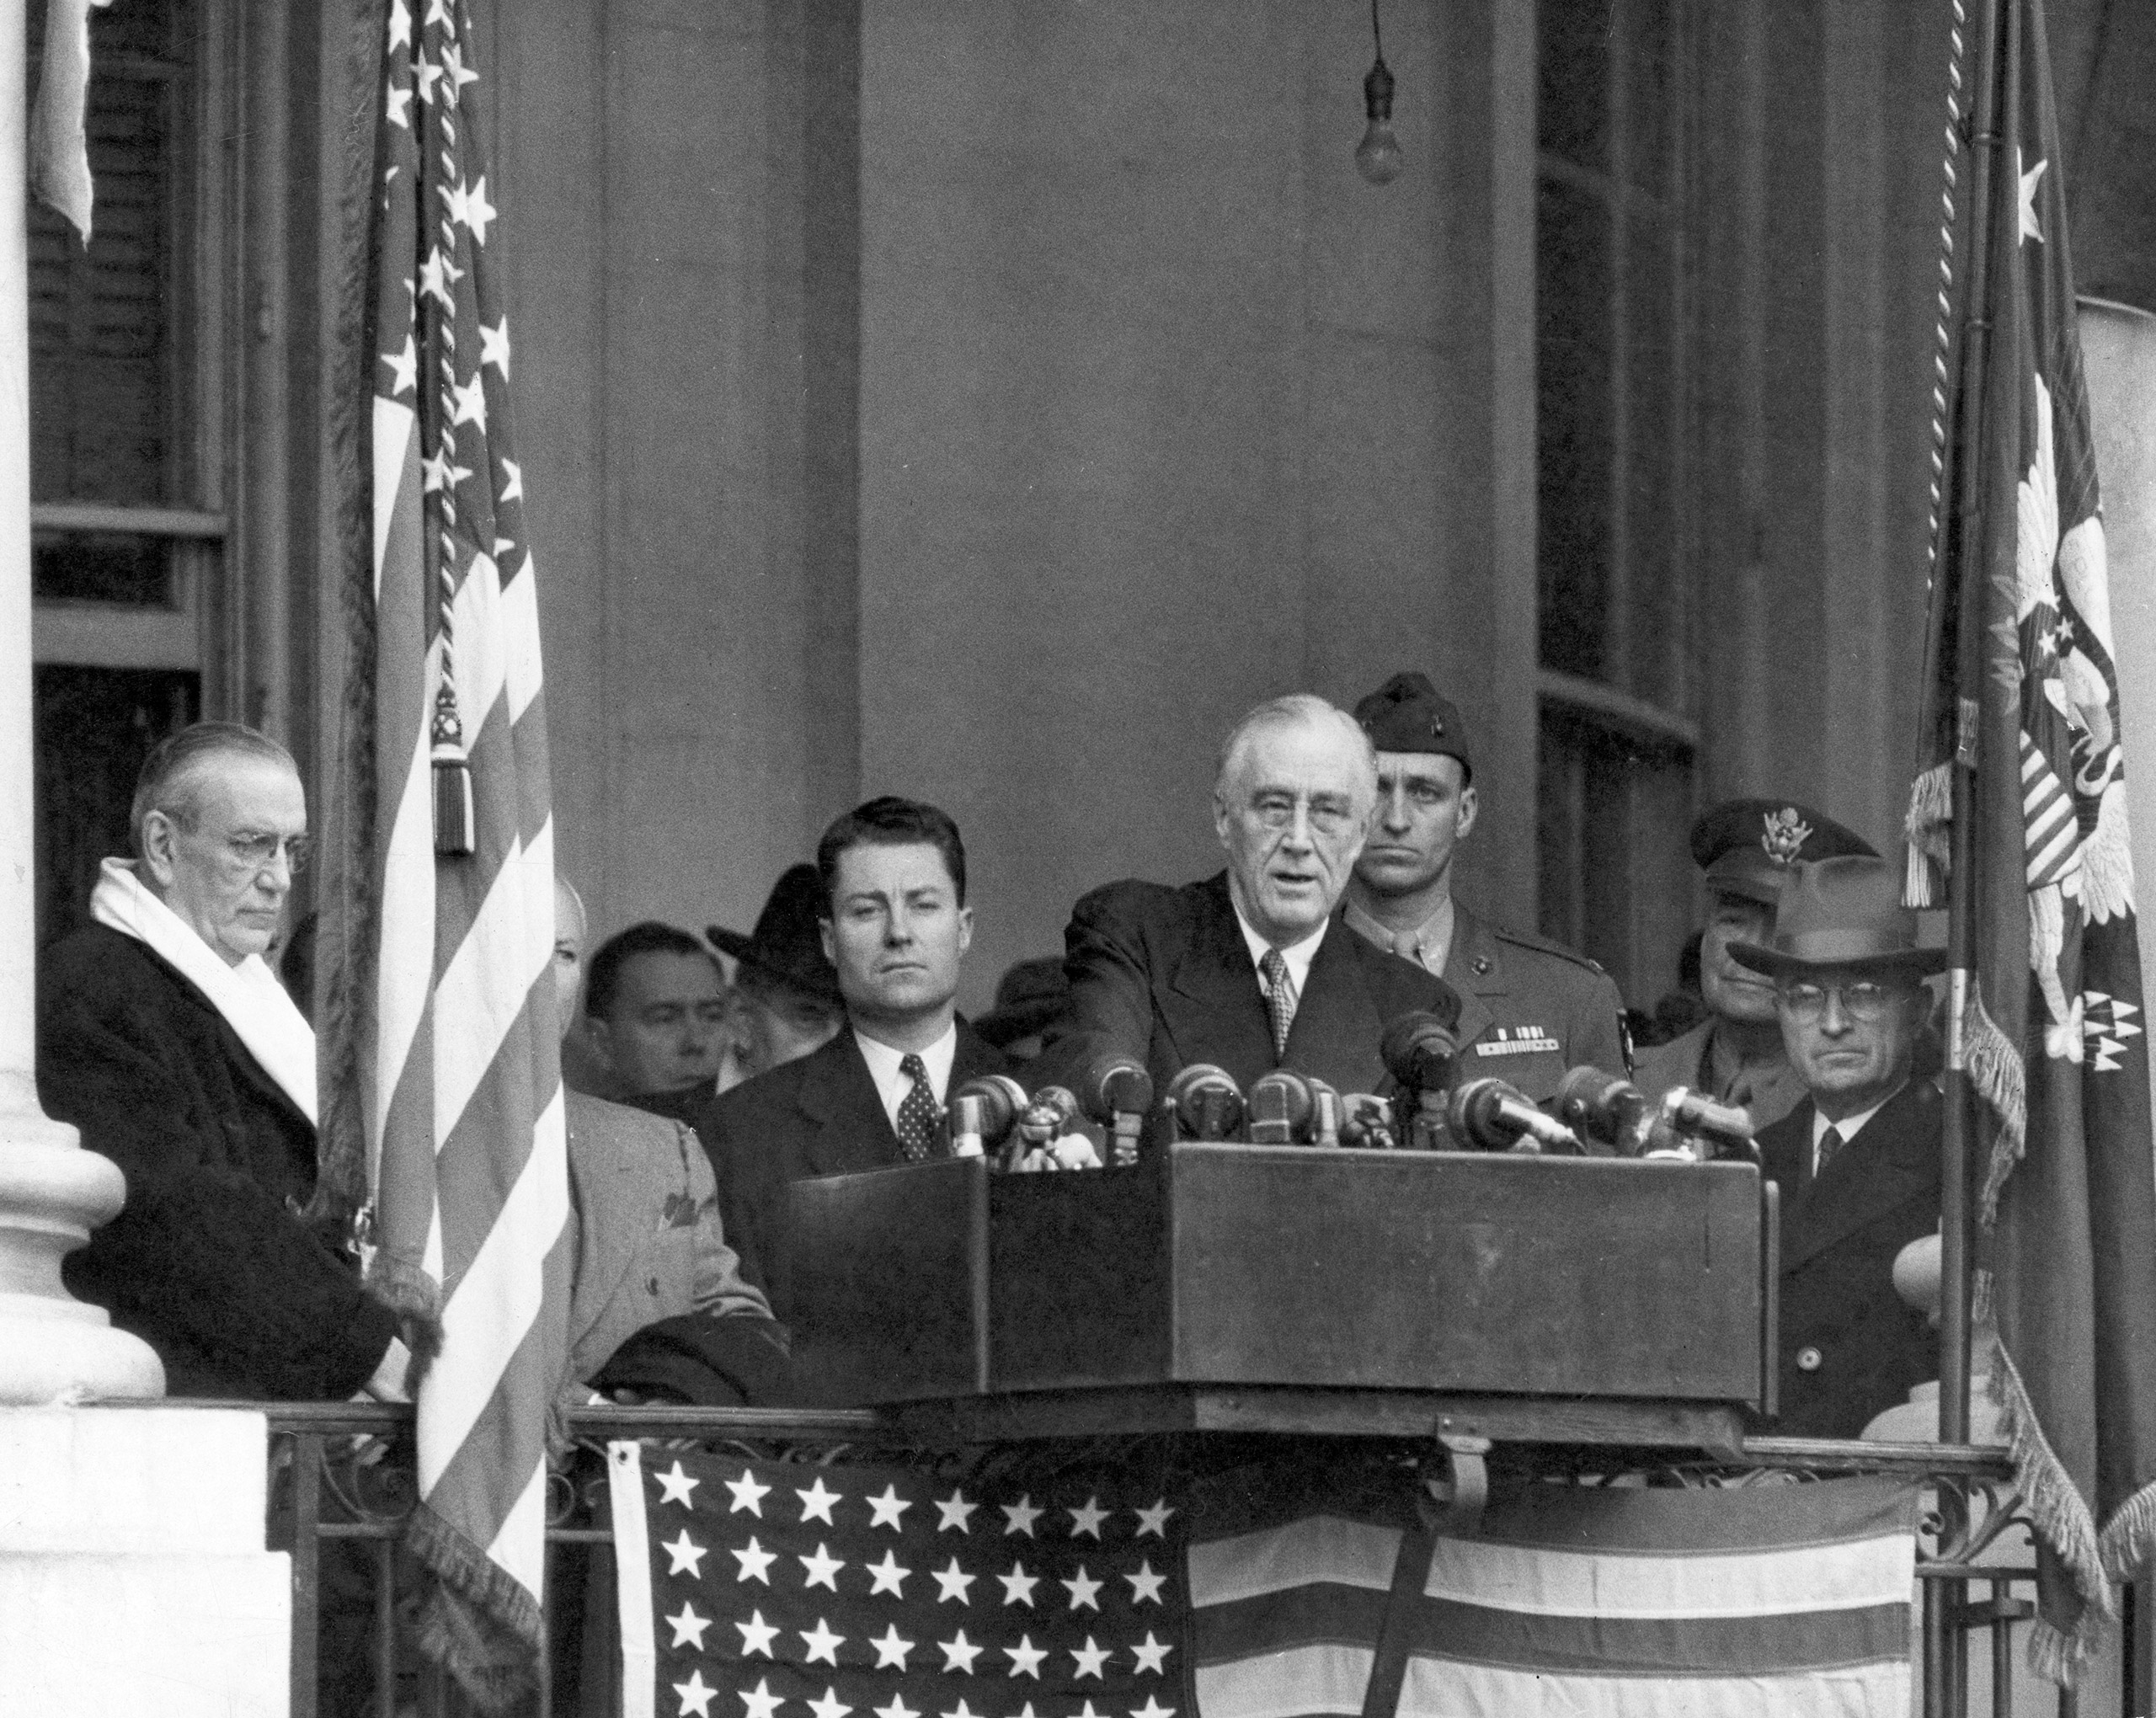 Franklin D. Roosevelt gives his fourth inaugural address, 1945.